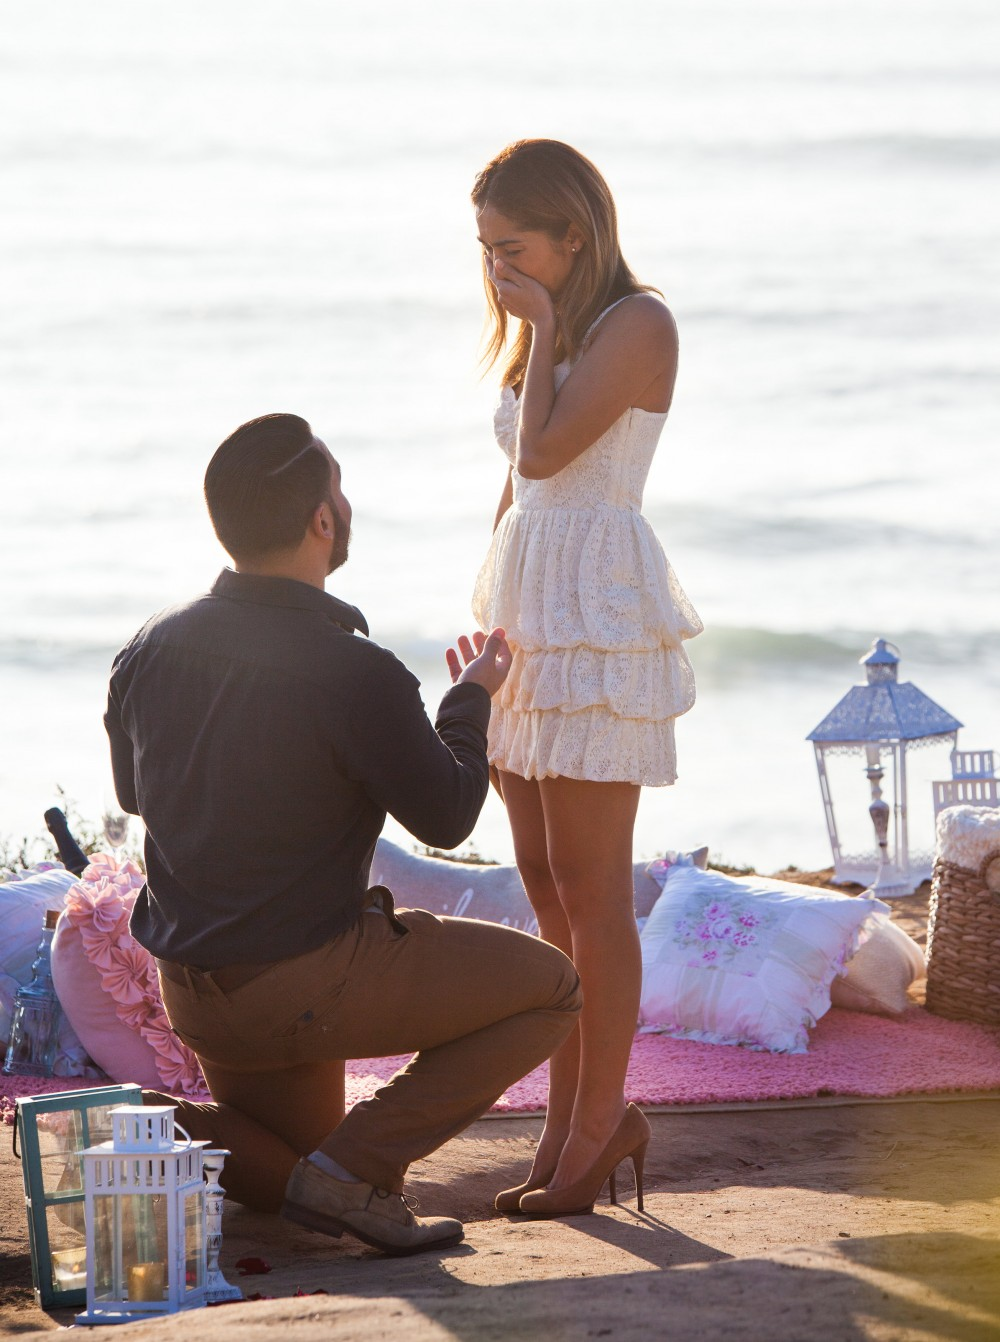 Image 5 of Diego and Jessica's Cliff Marriage Proposal at Sunset